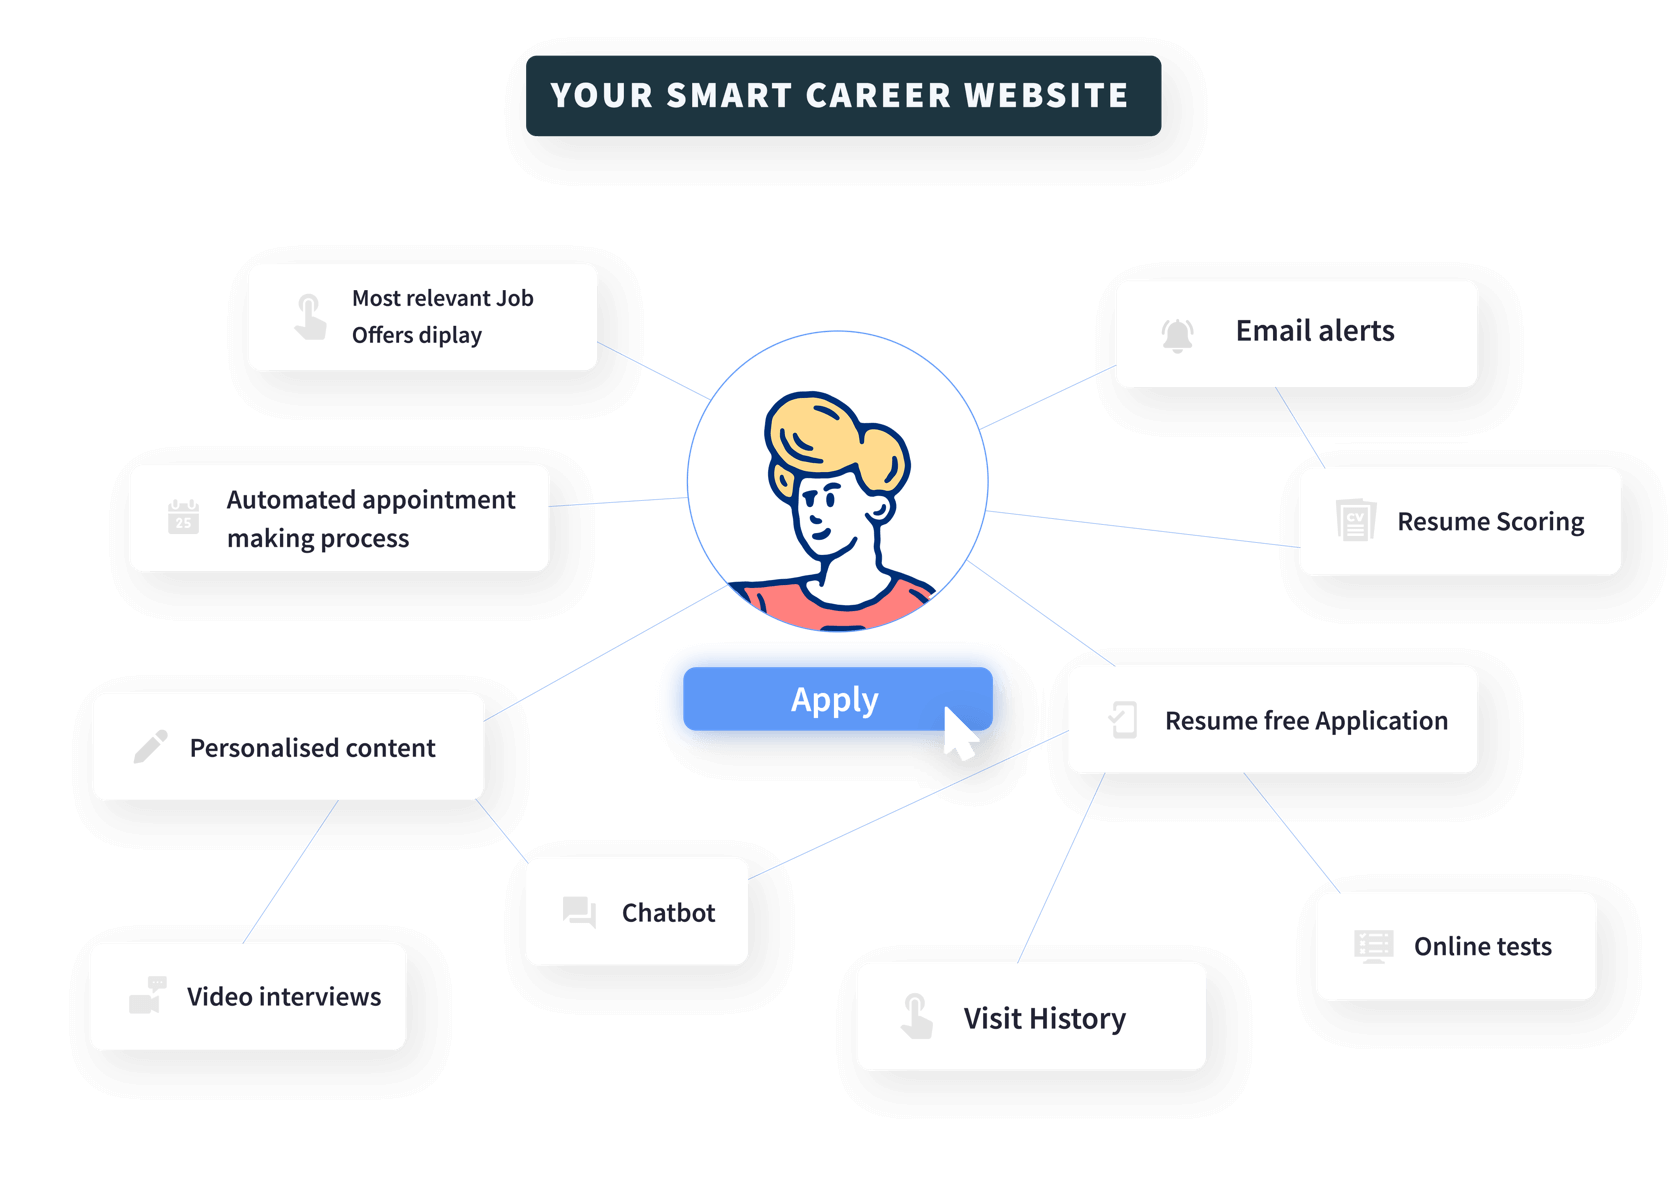 Smart Career Website